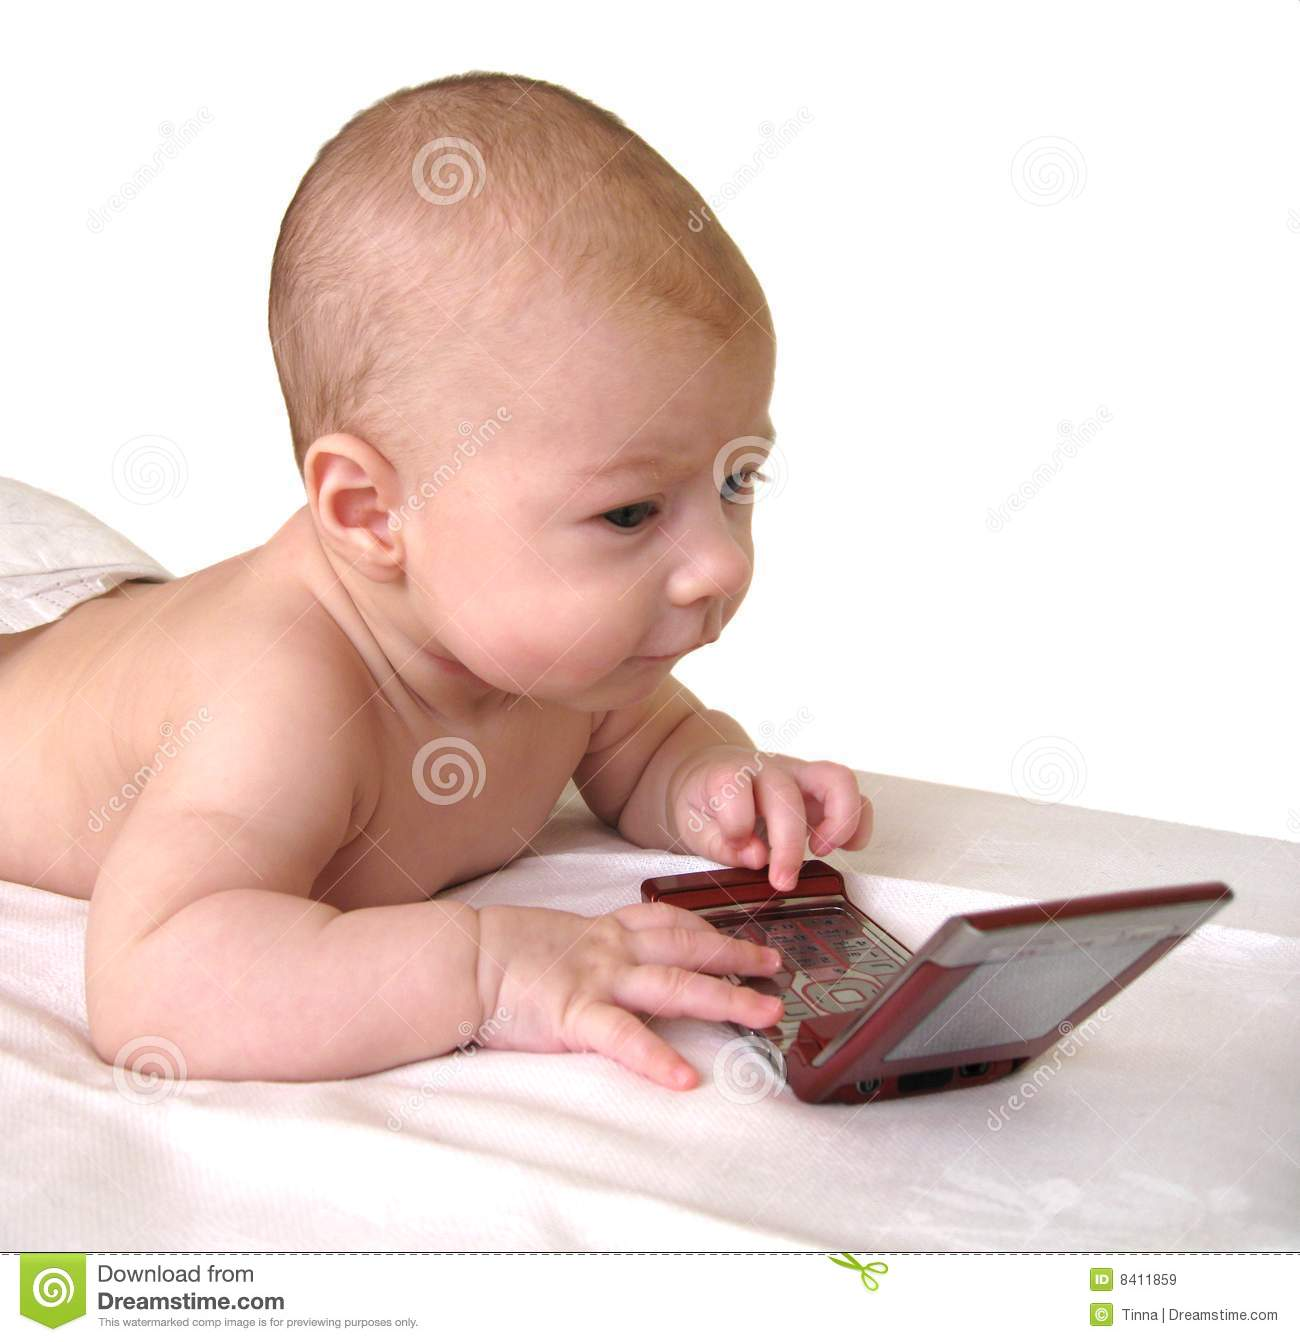 Baby playing with a smartphone